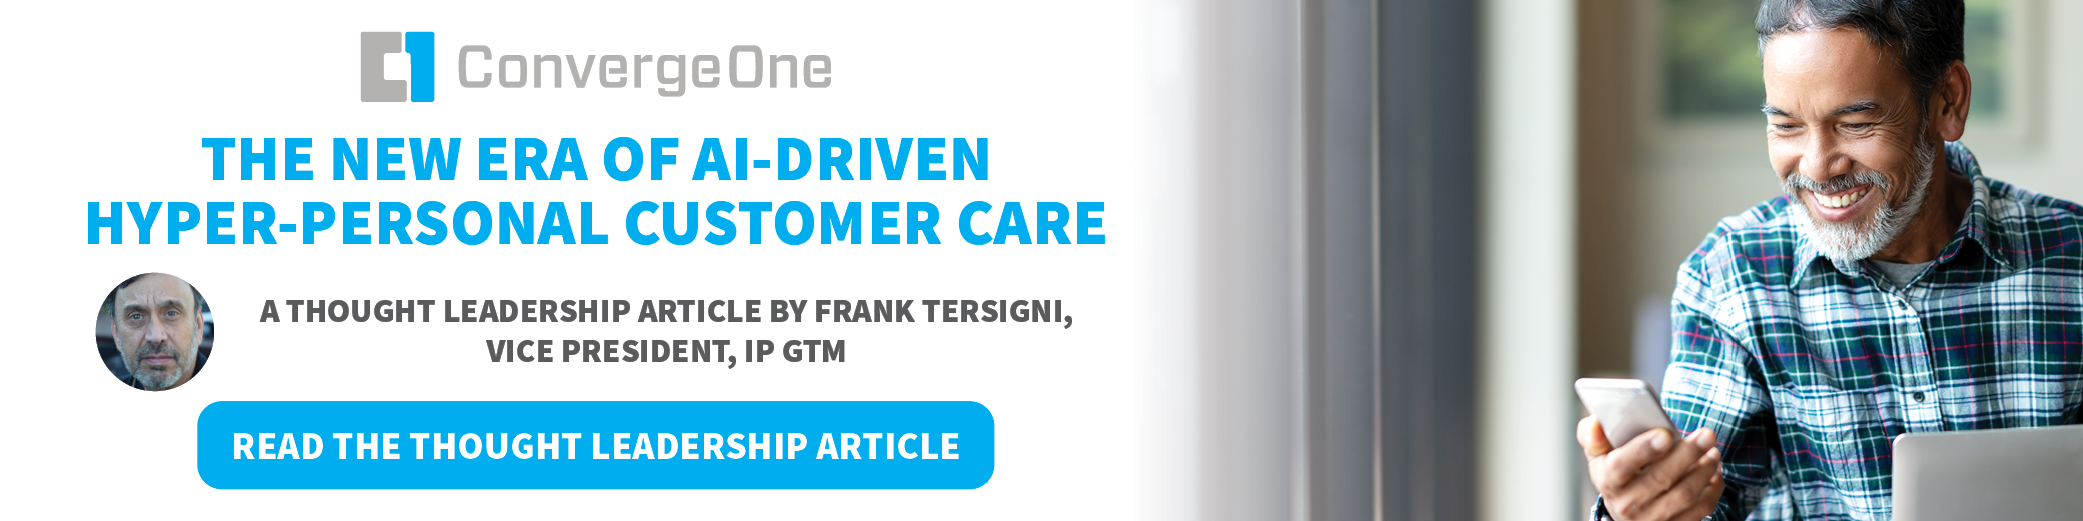 AI Customer Care Thought Leadership Article - Read Now